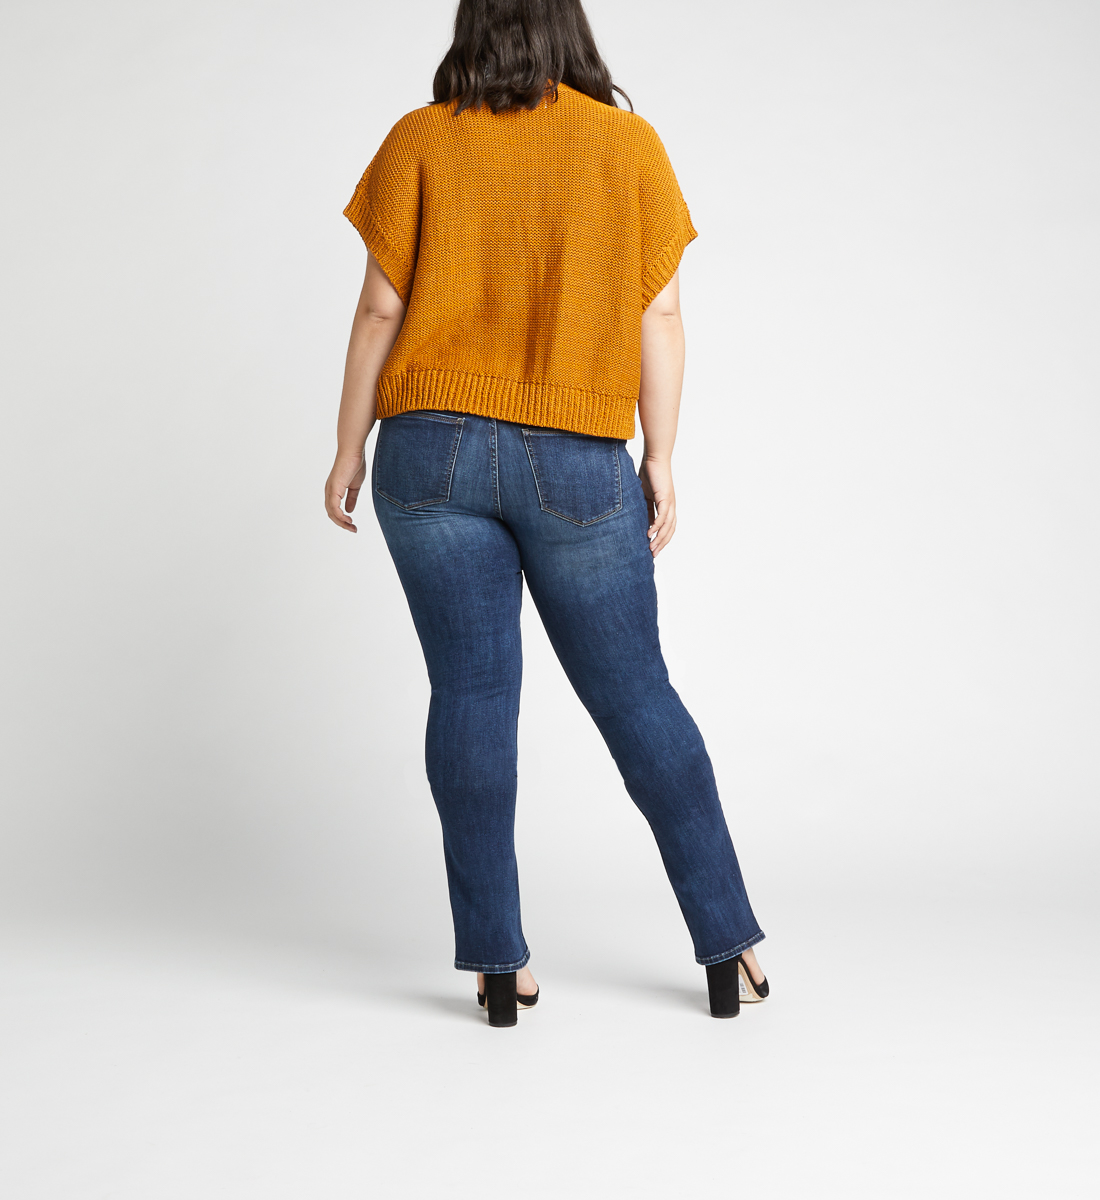 Most Wanted Mid Rise Skinny Bootcut Plus Size Jeans Back